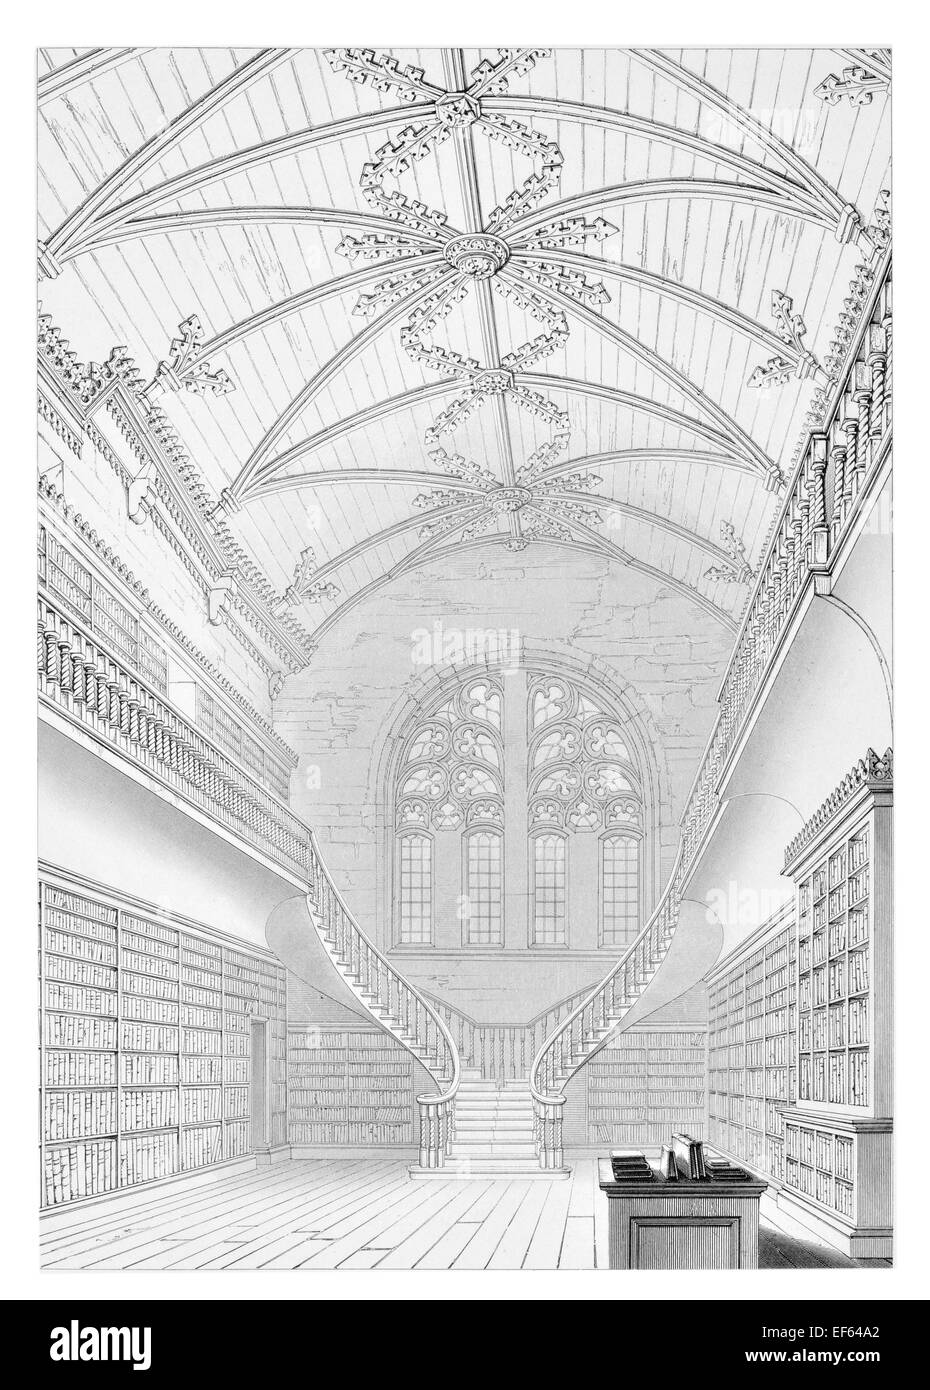 1852 Kings College Aberdeen  University Library Interior - Stock Image